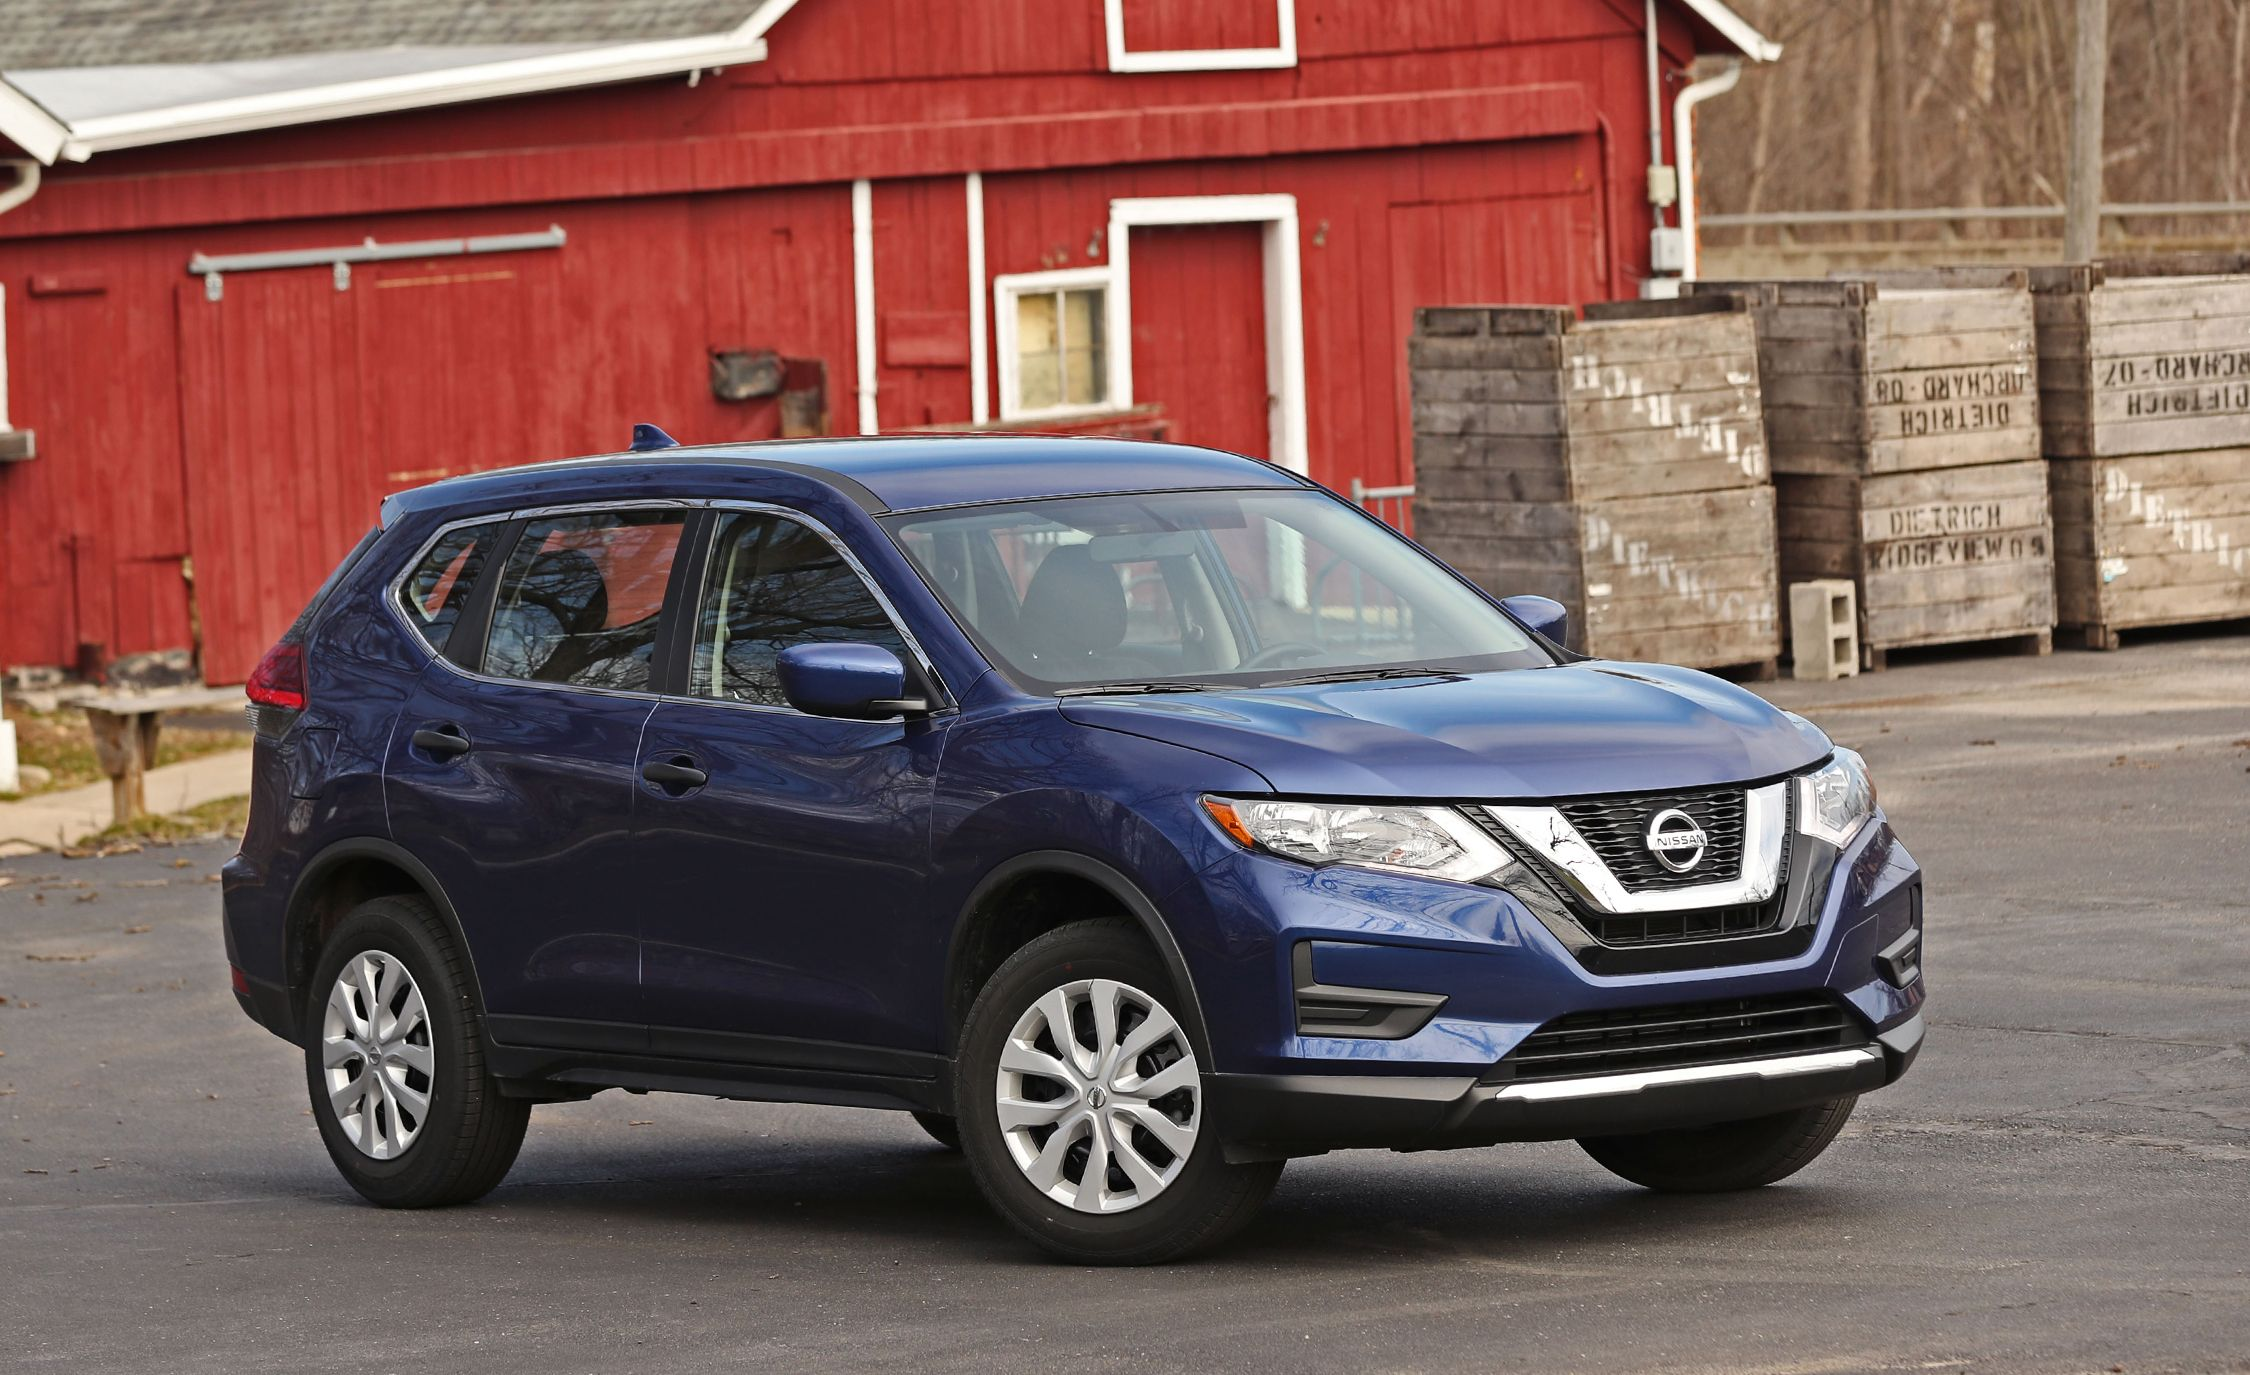 Nissan Rogue Service Manual: Driver Assistance System